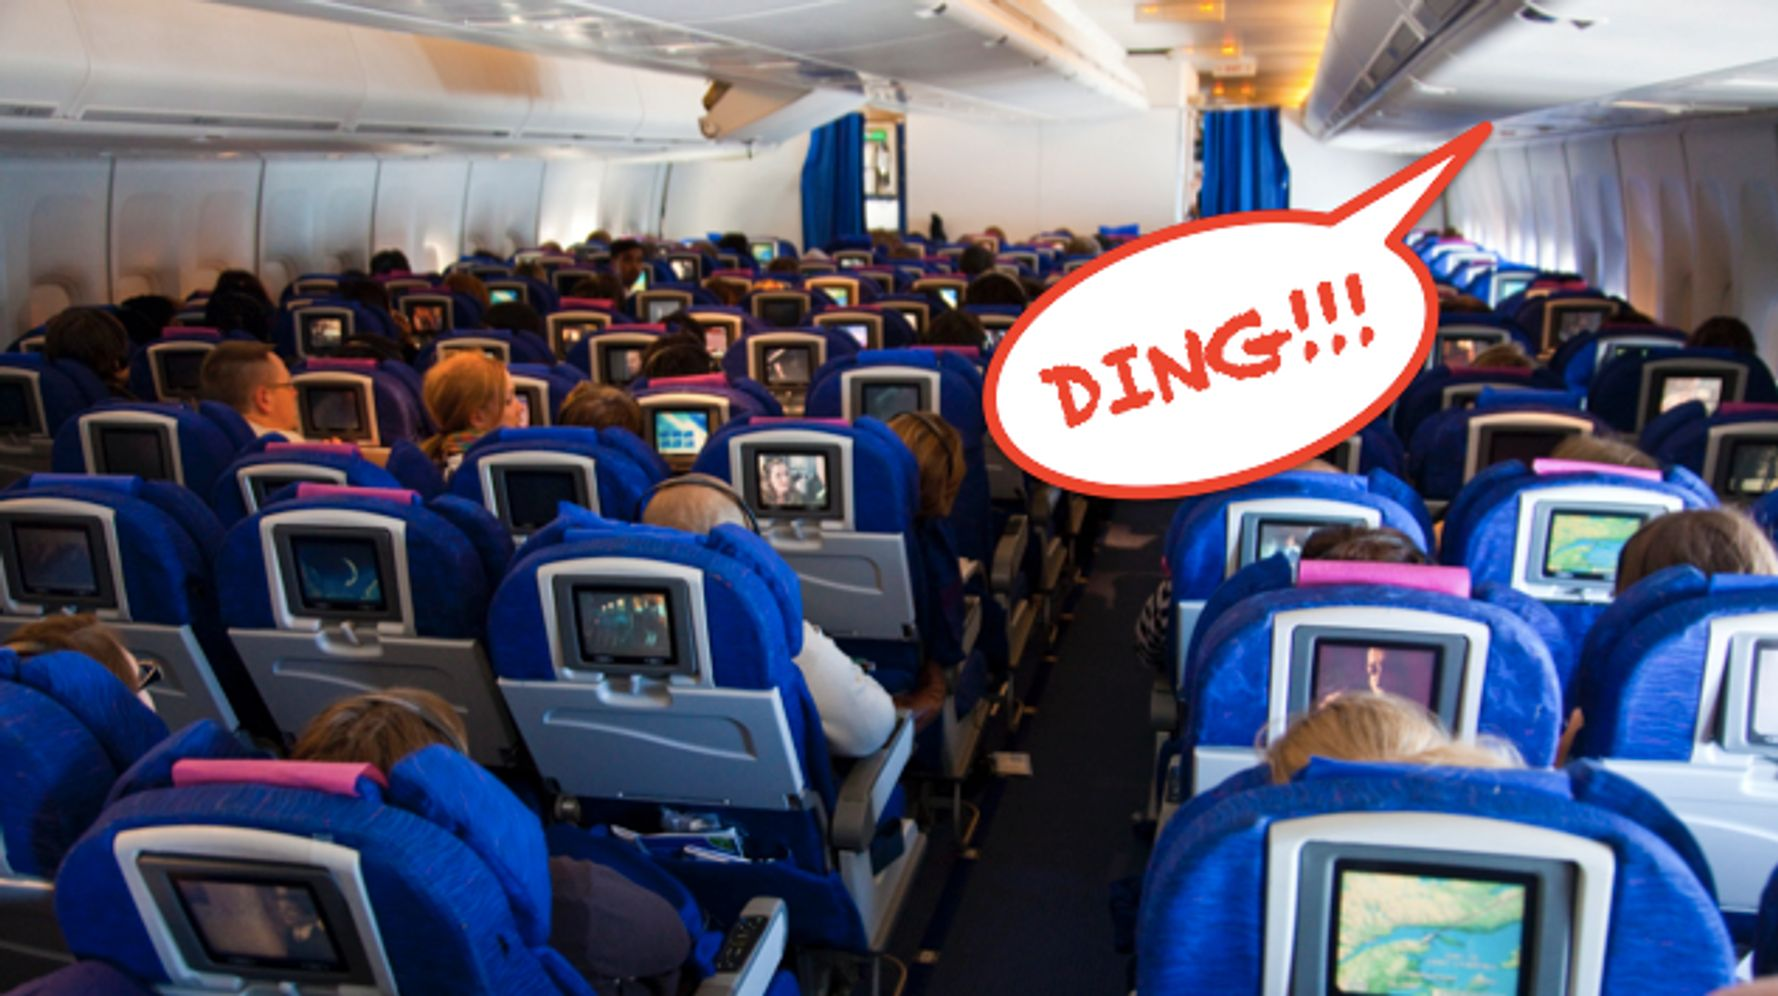 So THAT'S What Those 'Ding' Sounds During Flights Are All